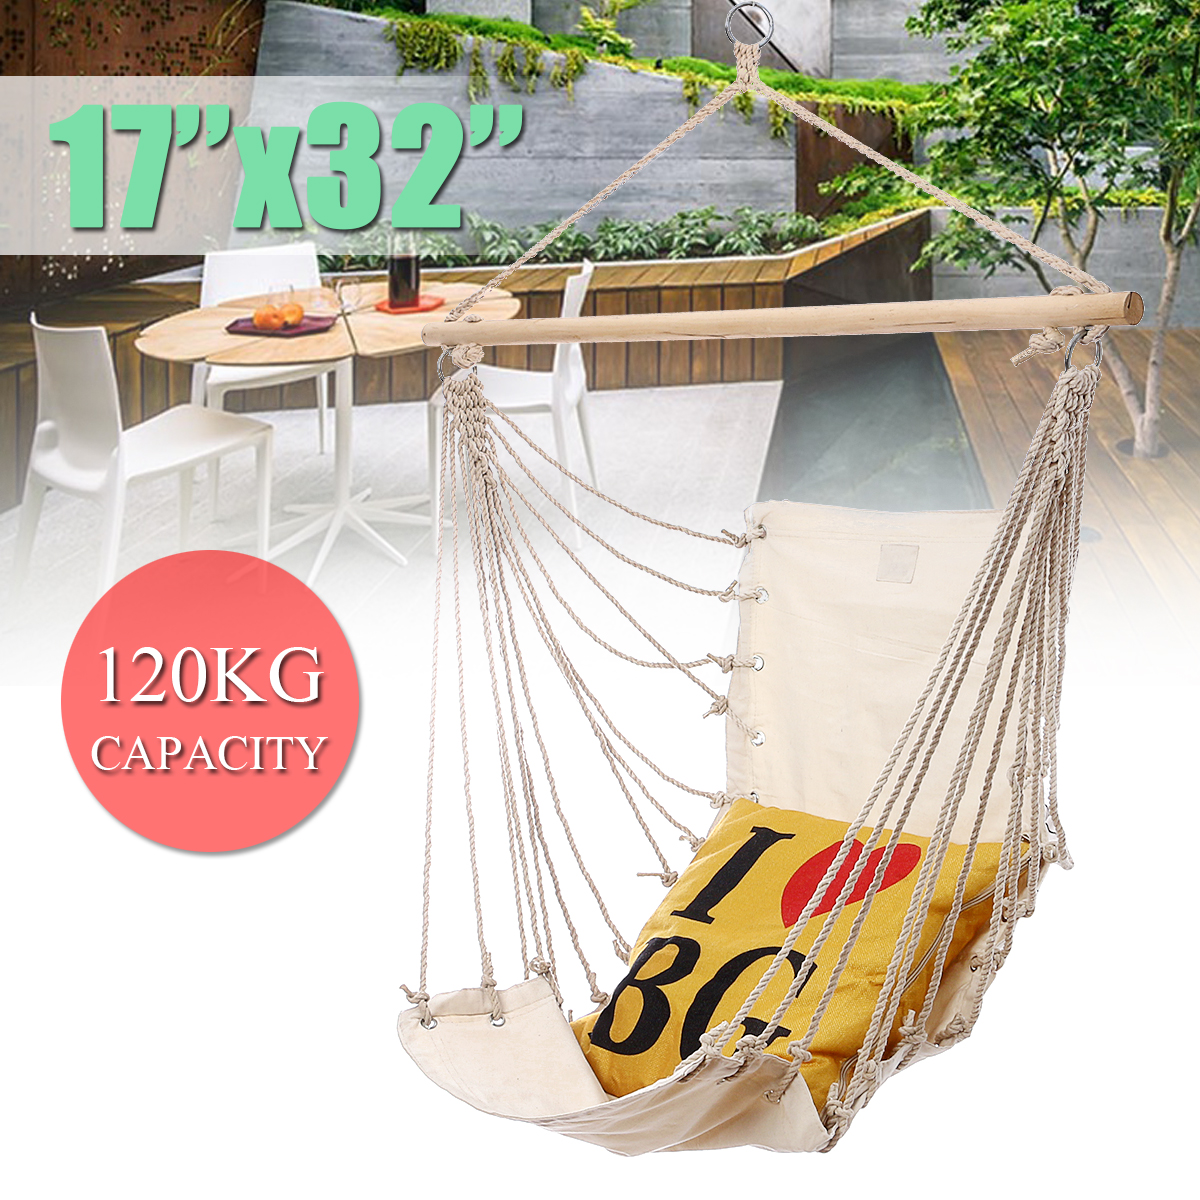 Portable Garden Hanging Cotton Hammock Chair Camping Single Swing Seat Relaxing Furniture For Child Adult Swinging Safety Chair garden swing for children baby inflatable hammock hanging swing chair kids indoor outdoor pod swing seat sets c036 free shipping